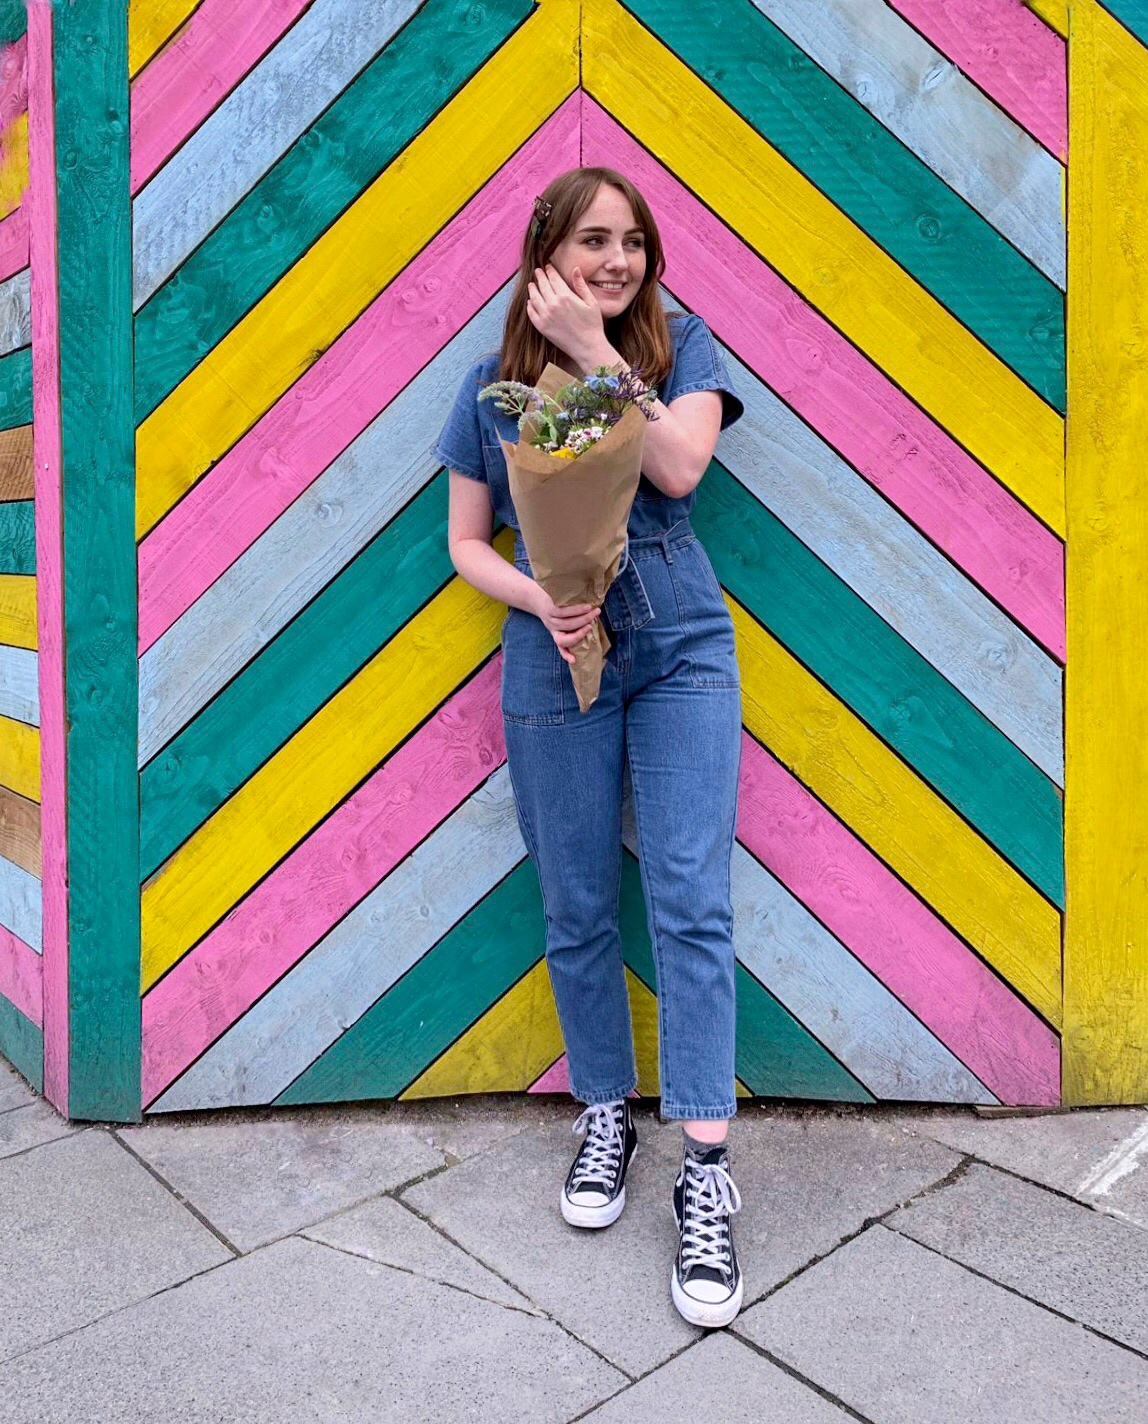 Liverpool blogger stands in front of brightly coloured striped wall, wearing denim boiler suit and converse, holding a bouquet of flowers and smiling